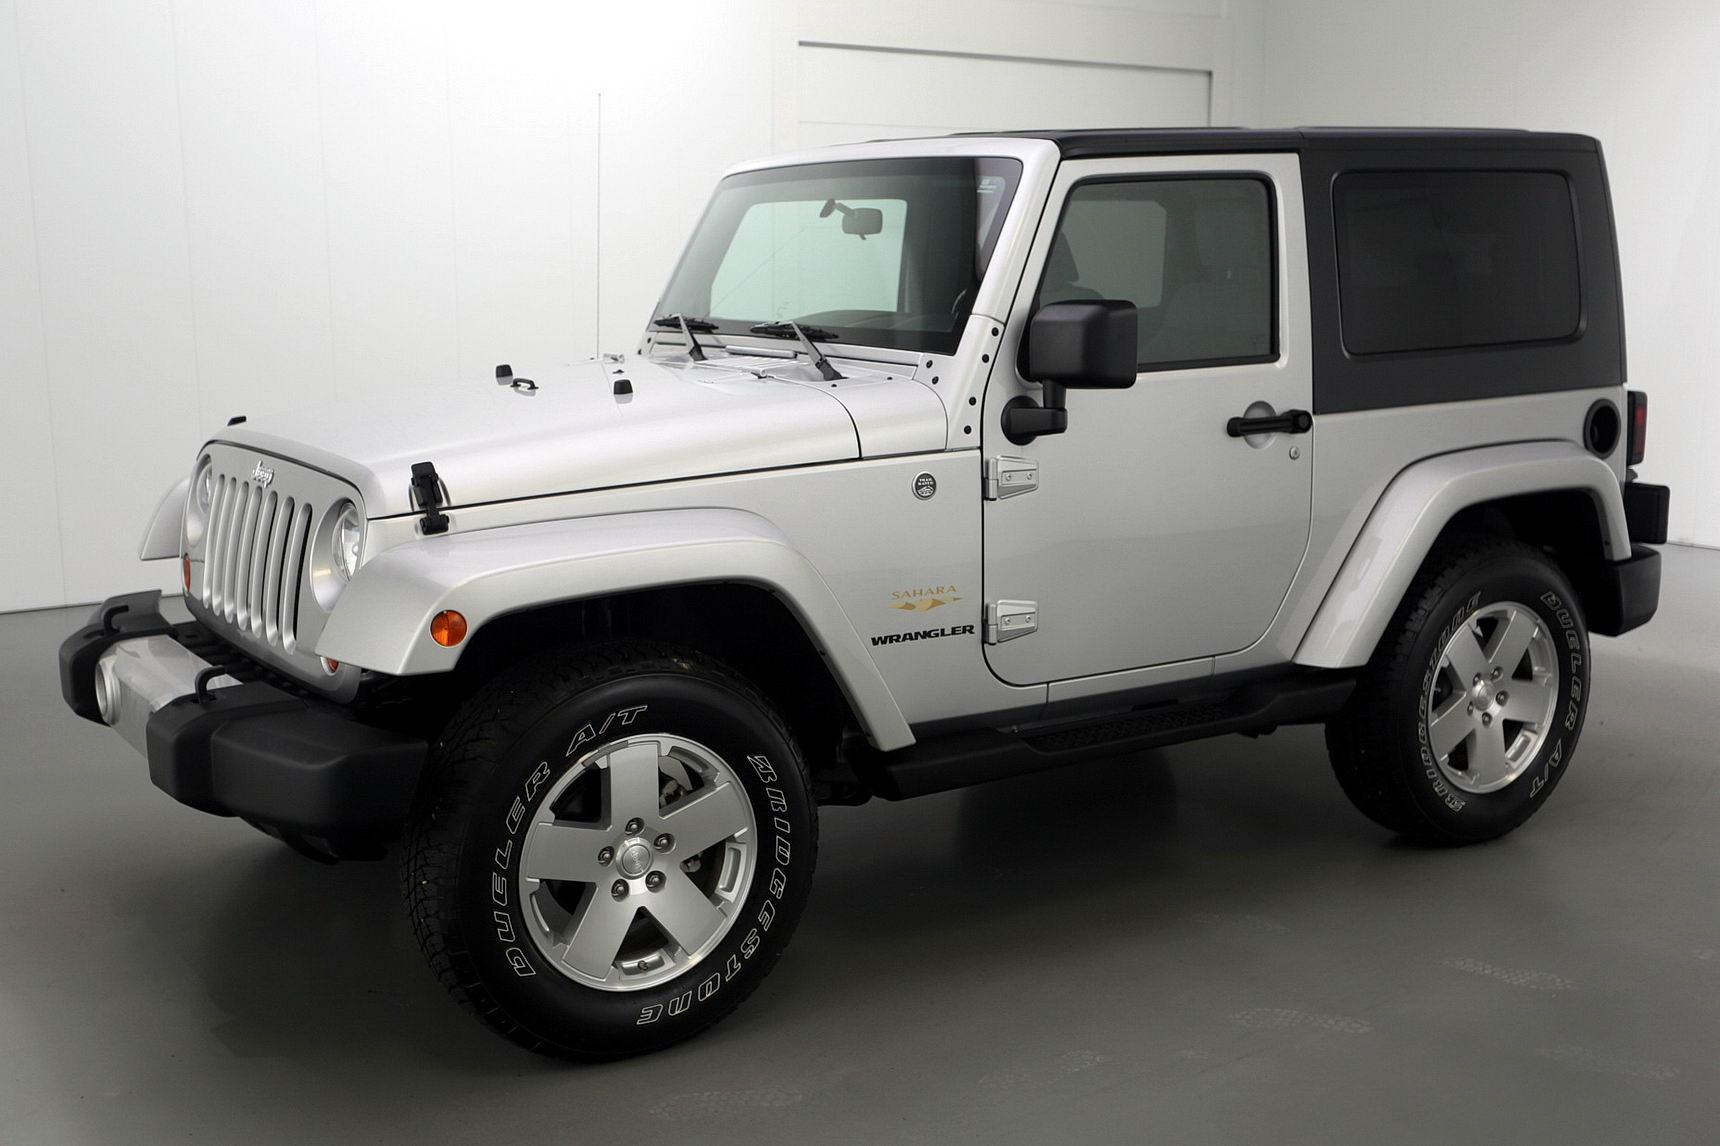 Jeep Wrangler Fog Lights >> 2008 Jeep Wrangler Sahara Edition | Brutal Motors